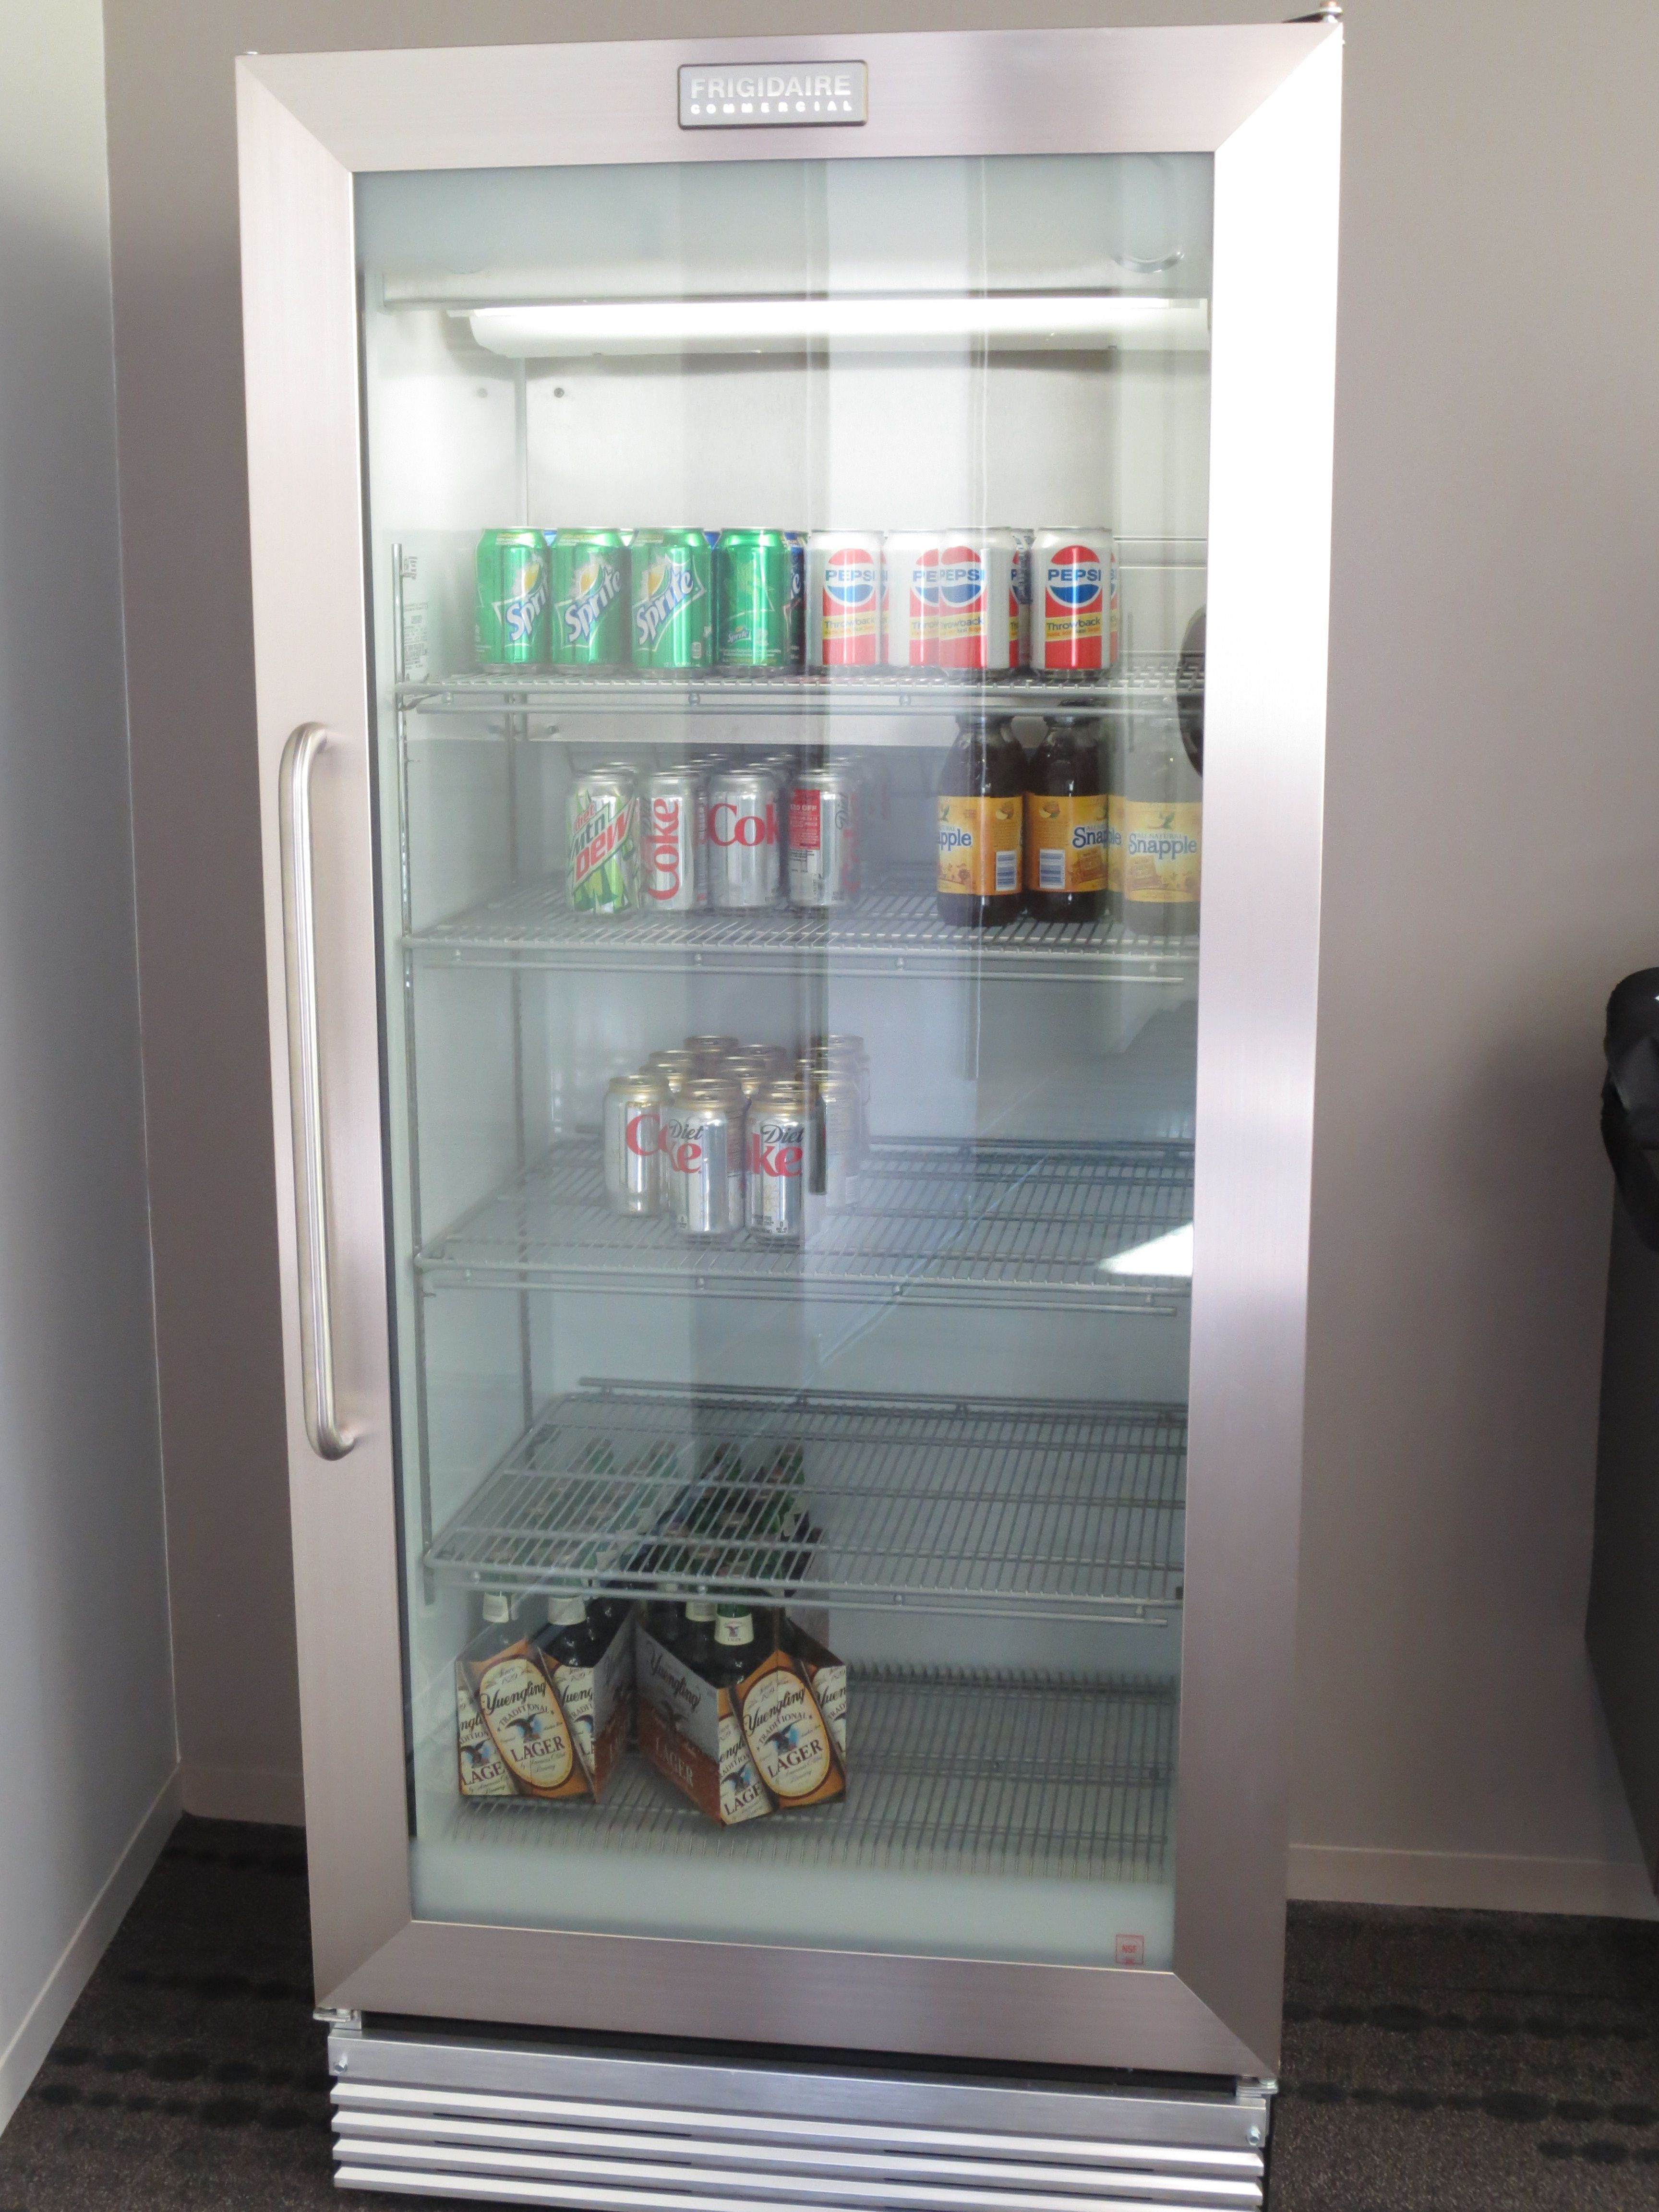 Frigidaire Commercial Grade Fridge with Glass Doors- a little more ...